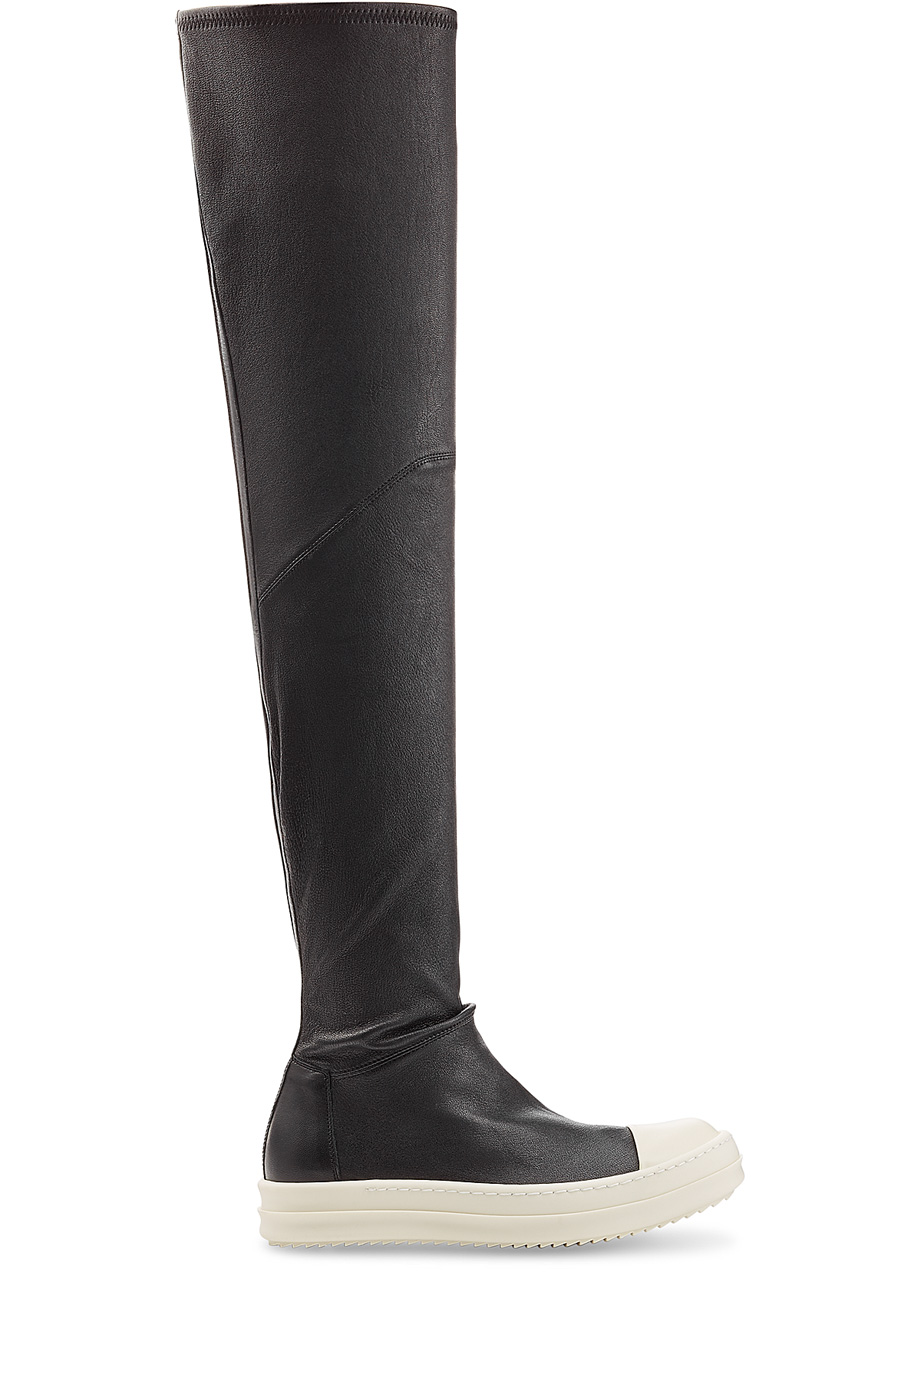 RICK OWENS Over The Knee Stretch Leather Sneakers, Black/White at STYLEBOP.com